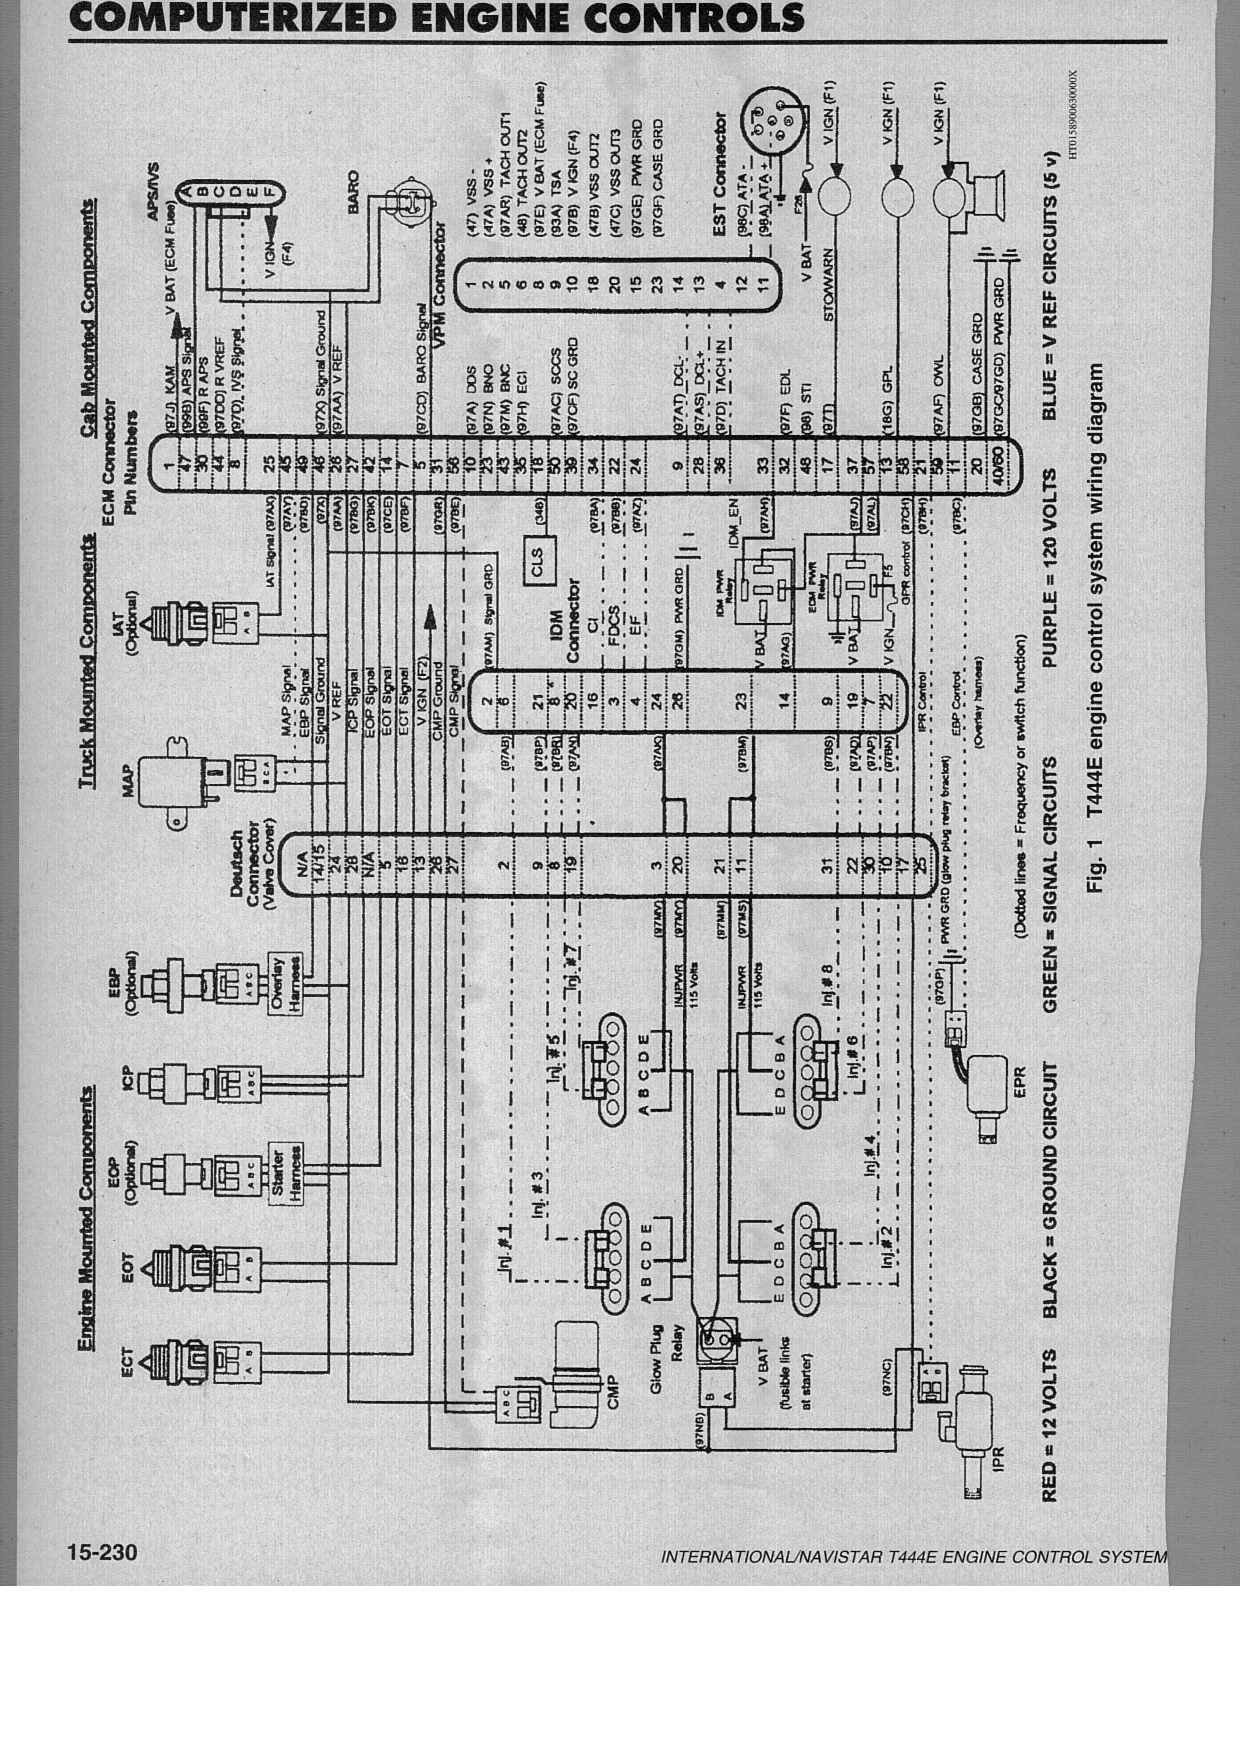 2009 07 30_180653_T444epg2 i have a 1997 school bus with an international t444e engine 2009 international prostar wiring diagram at bakdesigns.co